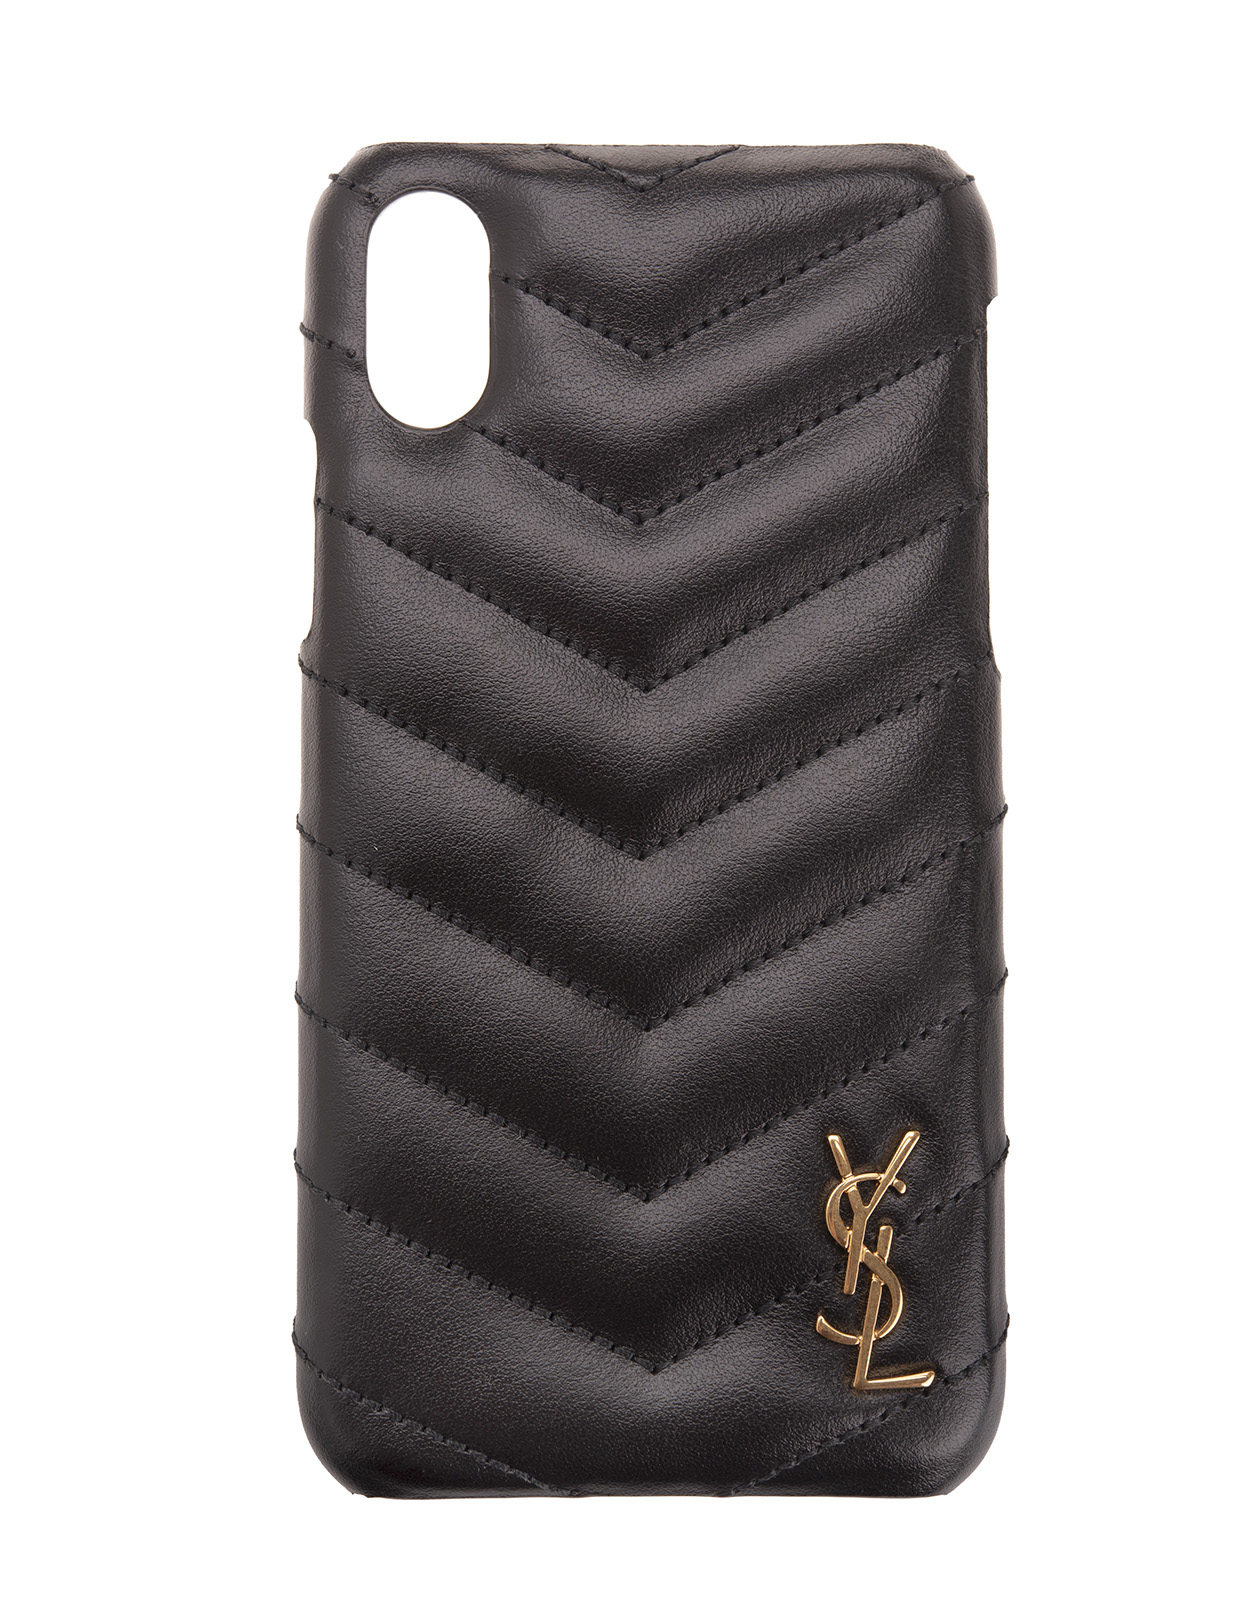 online retailer 10a49 032ac Monogram Cover Case For iPhone XS Black